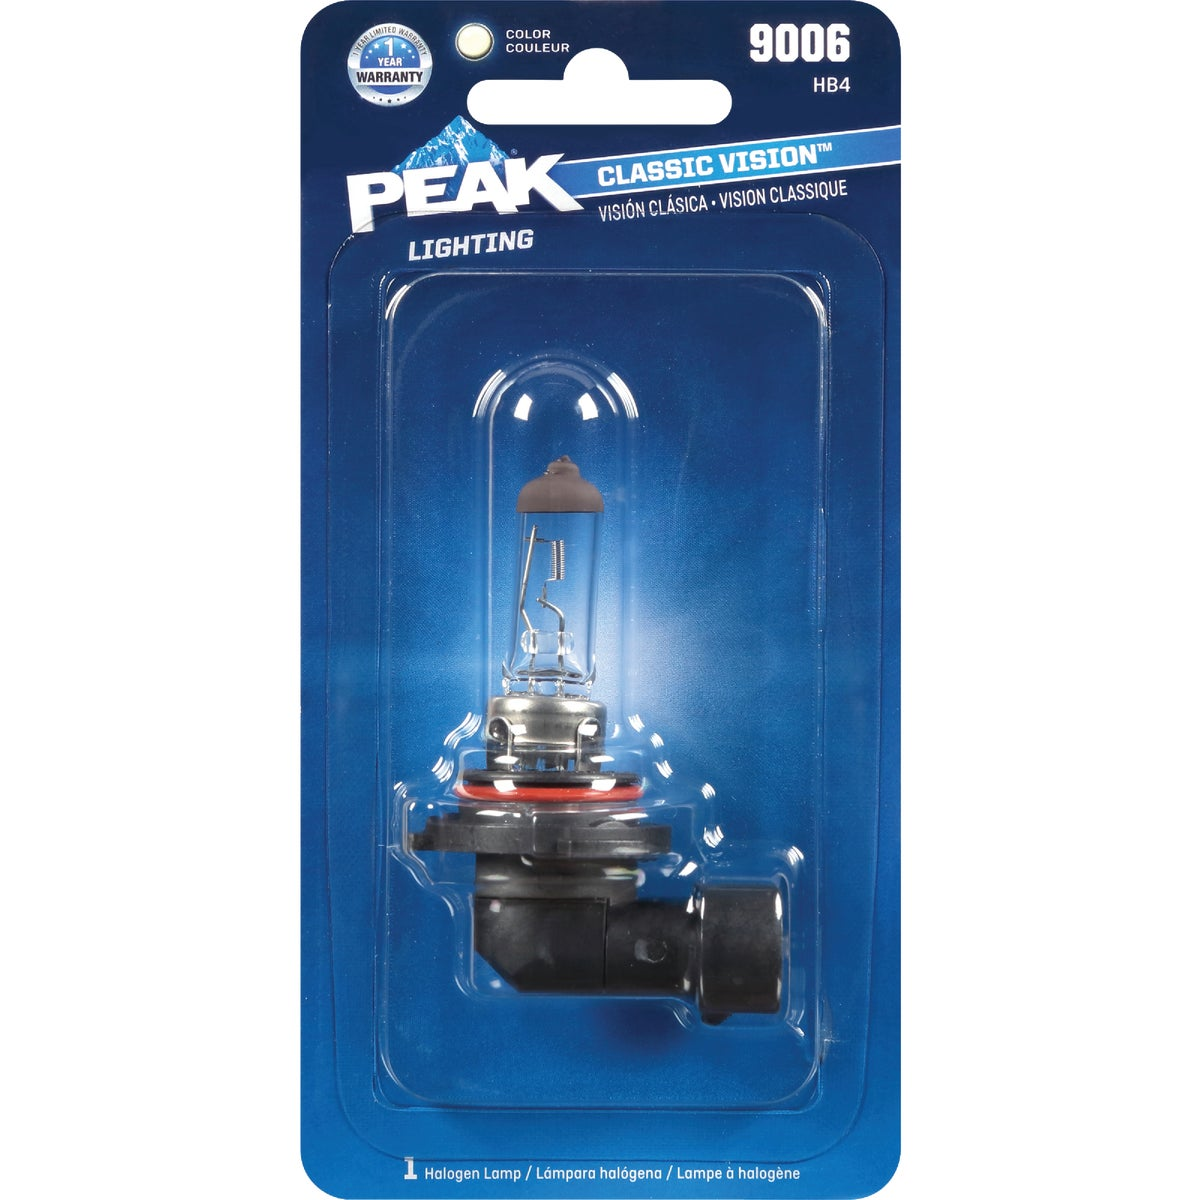 H9006 LOW HALOGEN BULB - 18510 by G E Automotive